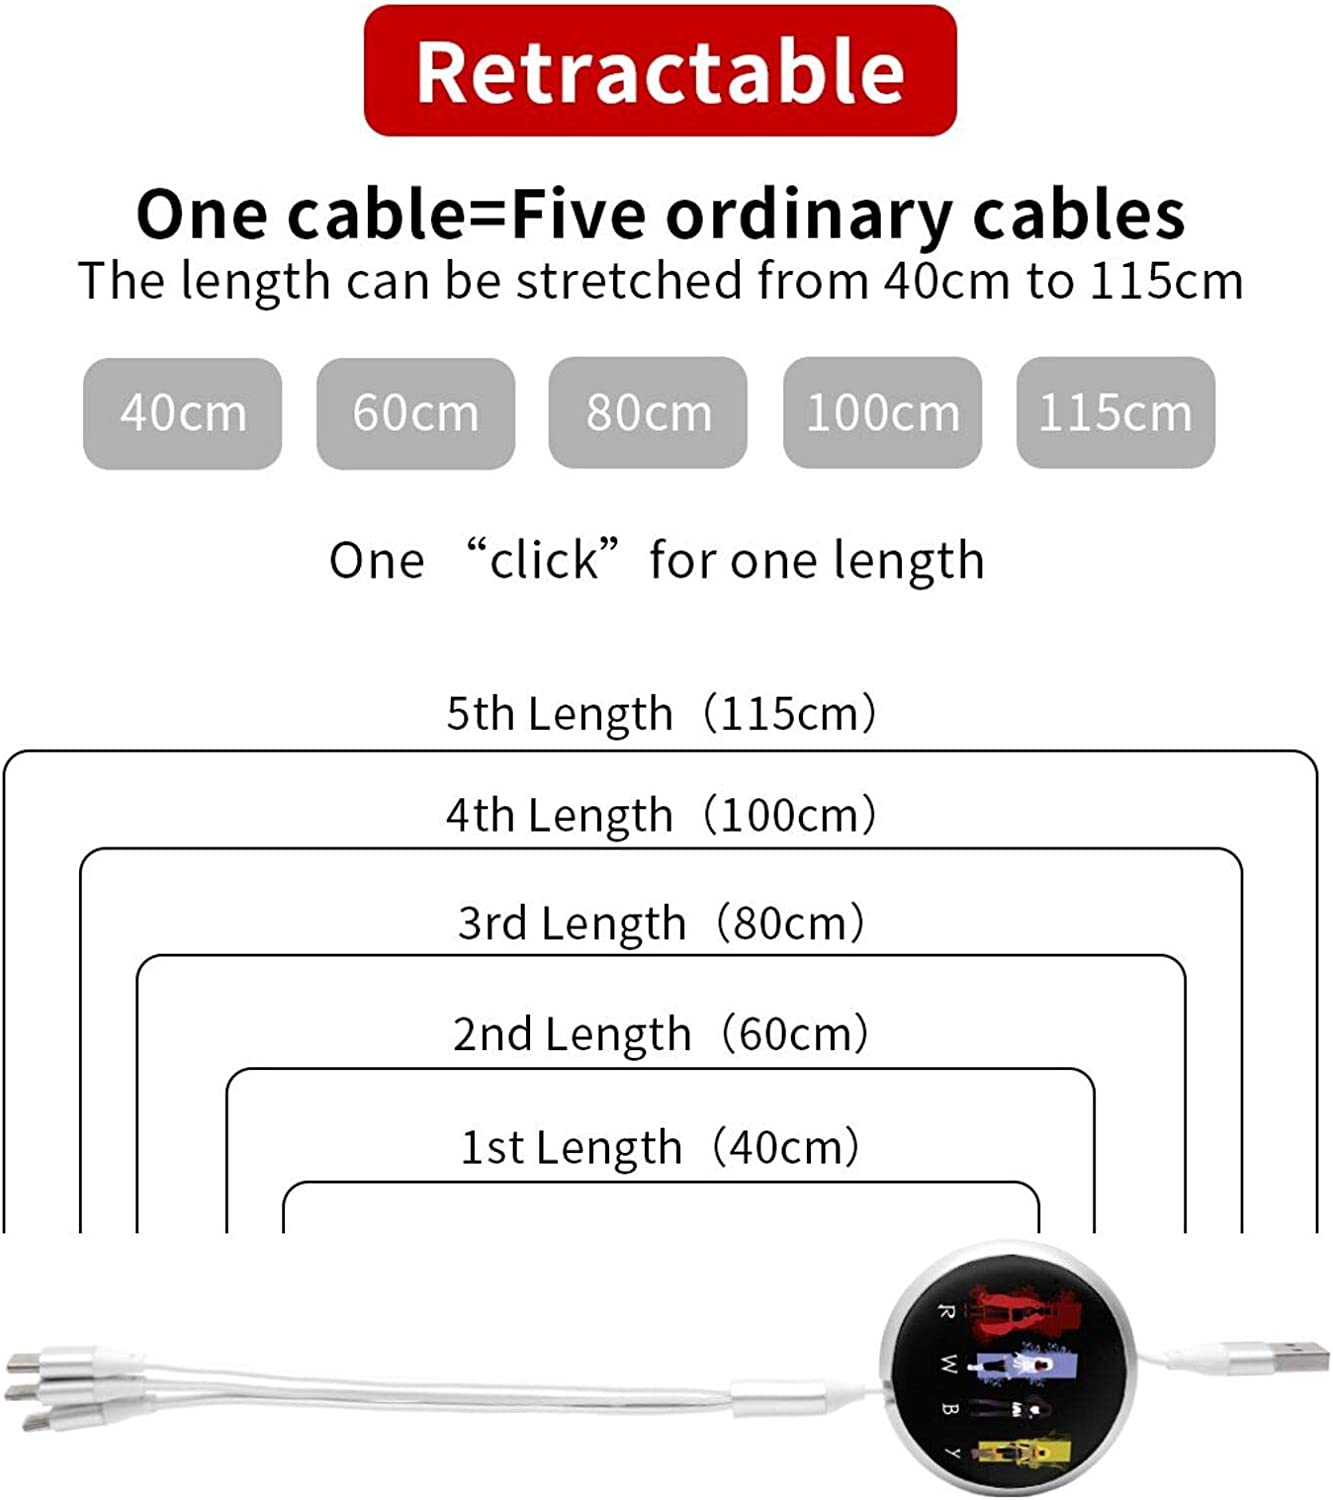 Fejarx RWBY Multi USB Retractable Charging Cable 4ft 3 in 1 Multiple Charger Cord Adapter Micro USB Port Compatible Cell Phones Tablets and More Universal Use B-1